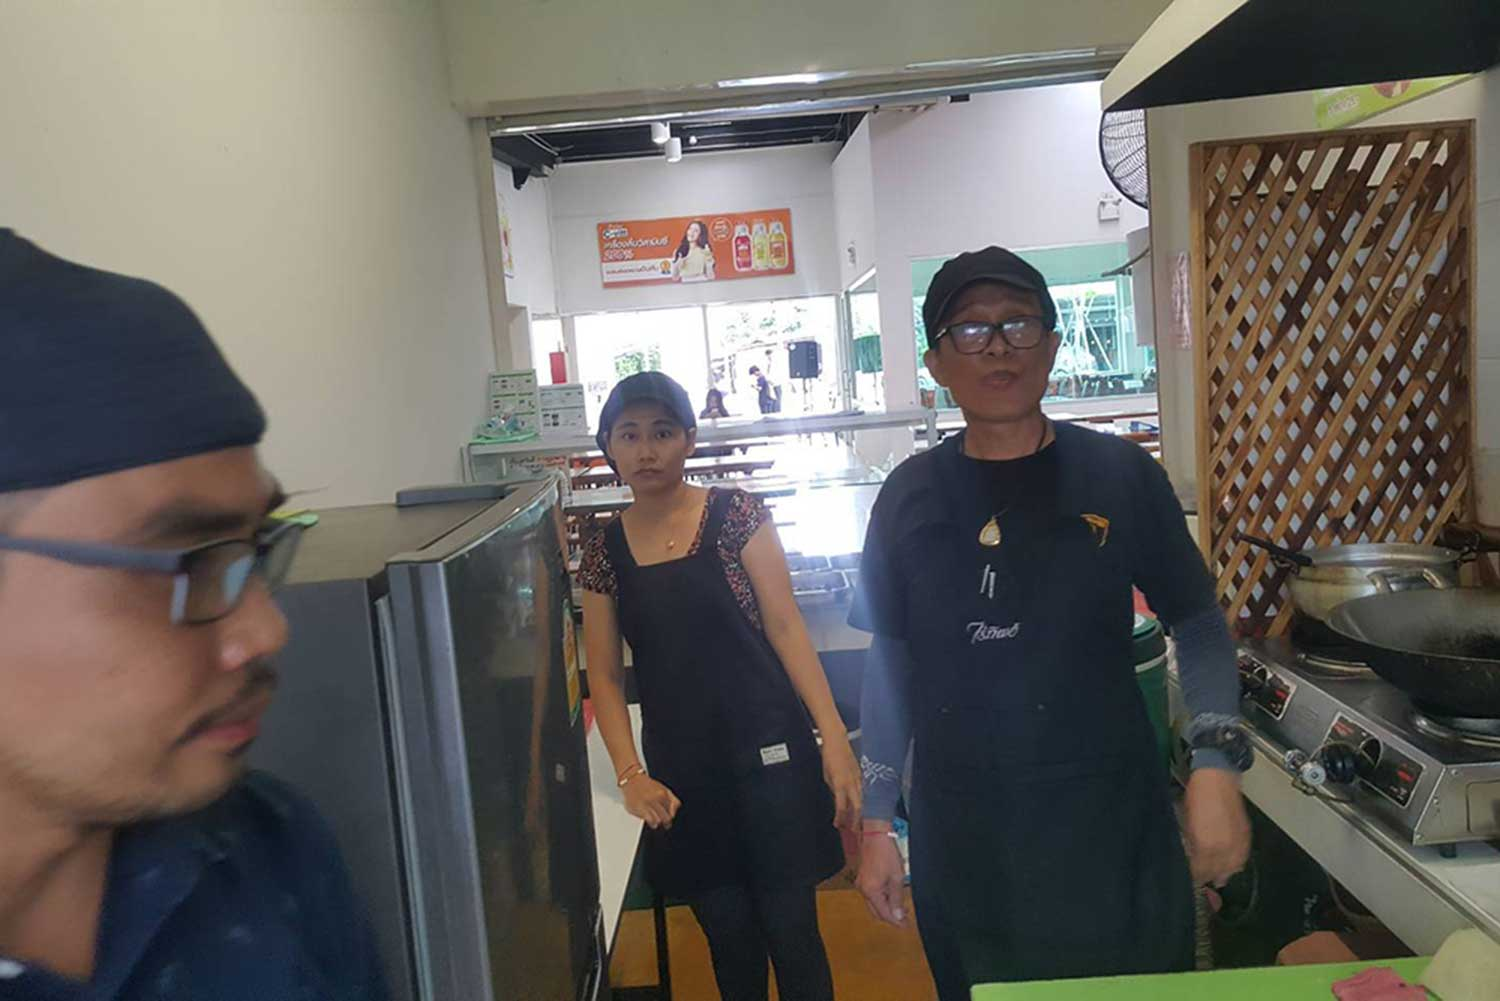 Chayaphol Dokmai-ngam (right), 54, and his wife Suthicha or Tik Suphan, 39, a couple wanted on more than 50 arrest warrants for alleged fraud, are caught at a food shop in Chiang Mai province. (Supplied photo via Wassayos Ngamkham)